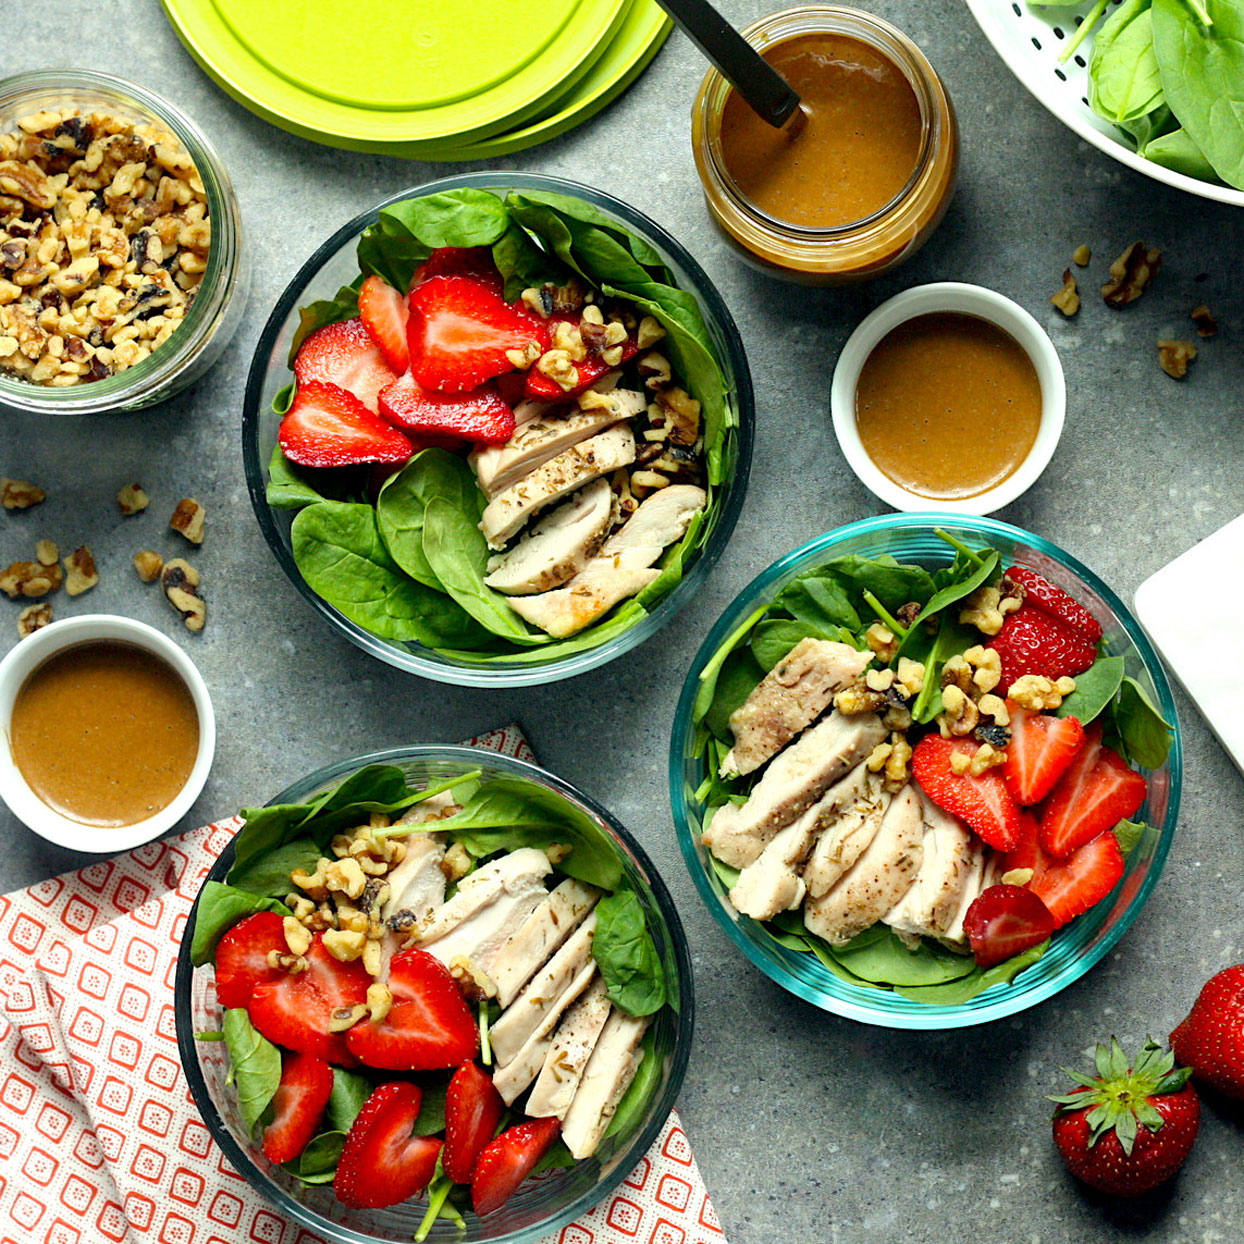 10 Satisfying High-Protein Spinach Salad Recipes